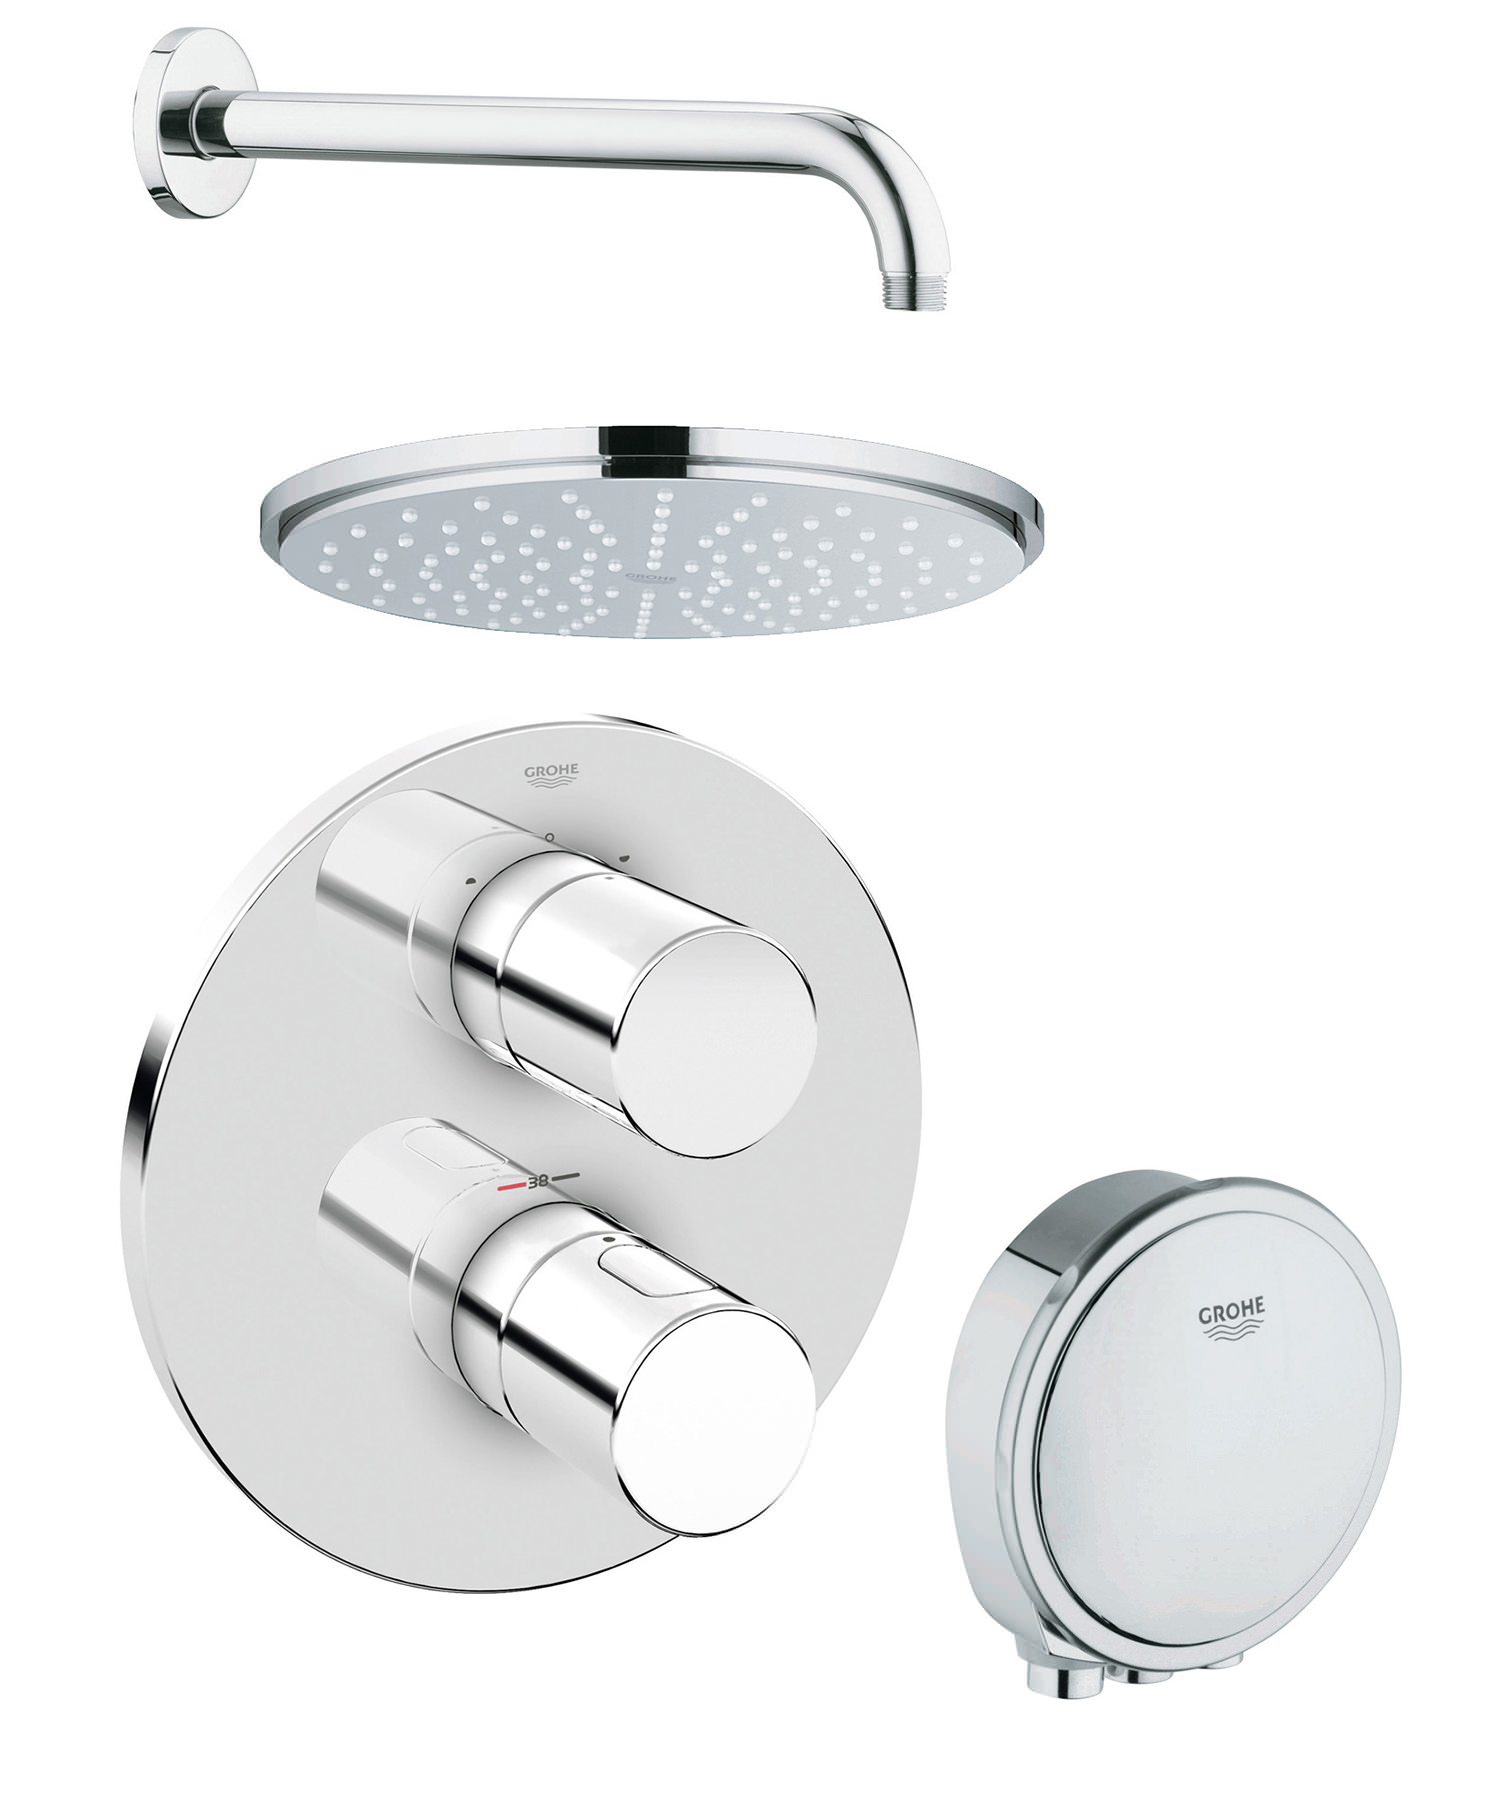 Sehr Gut Grohe Grohtherm 3000 Cosmopolitan Bath And Shower Solution Pack 2 PQ37